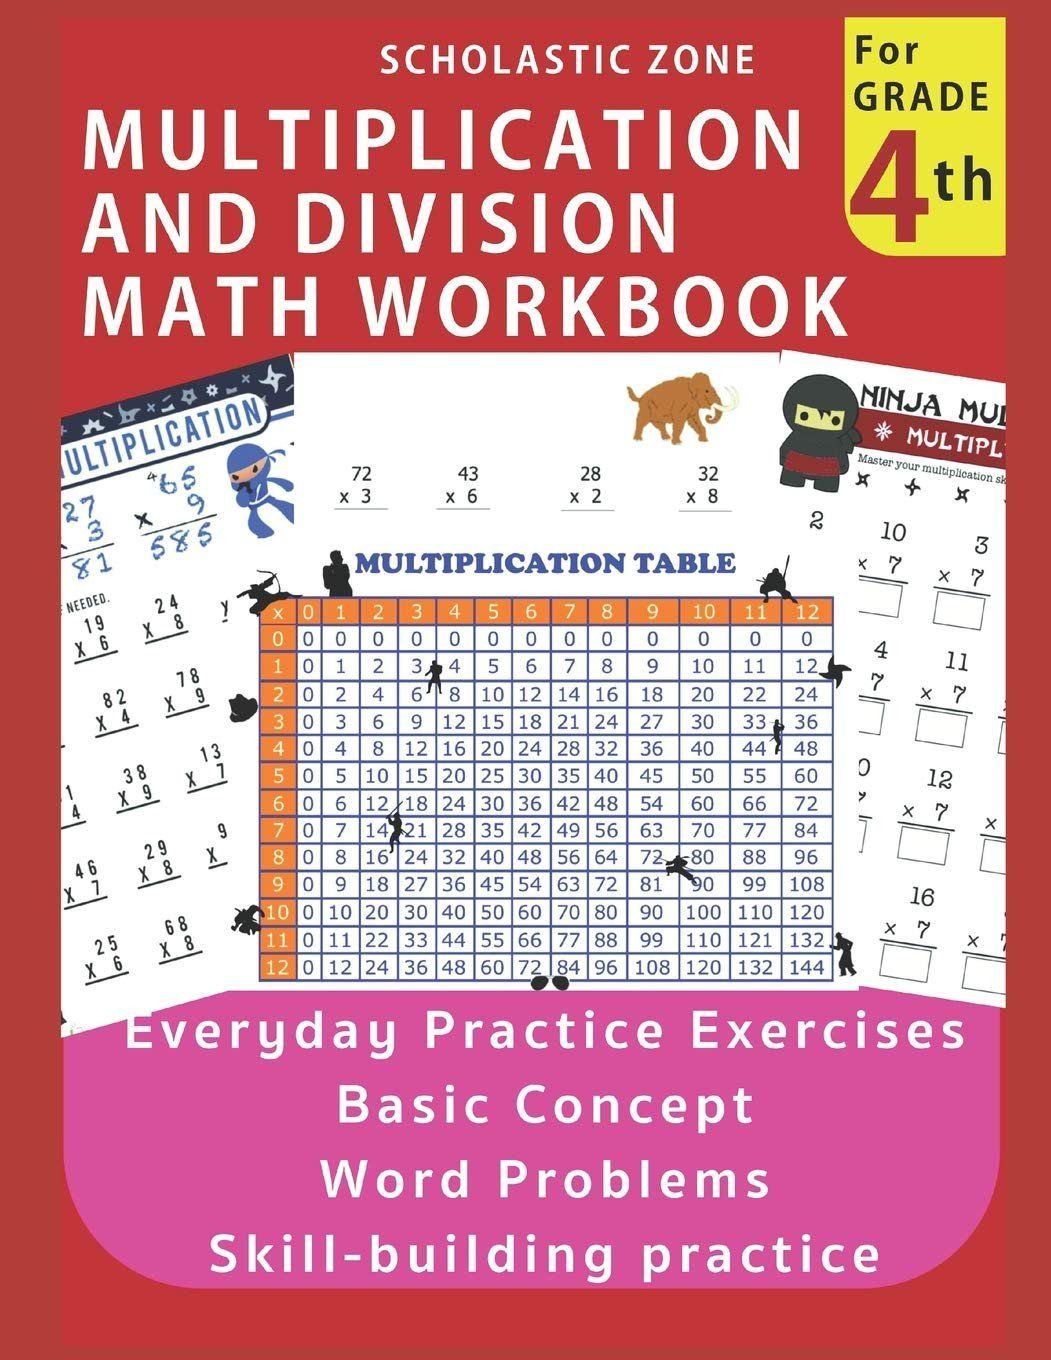 4th Grade Math Review Worksheets Multiplication And